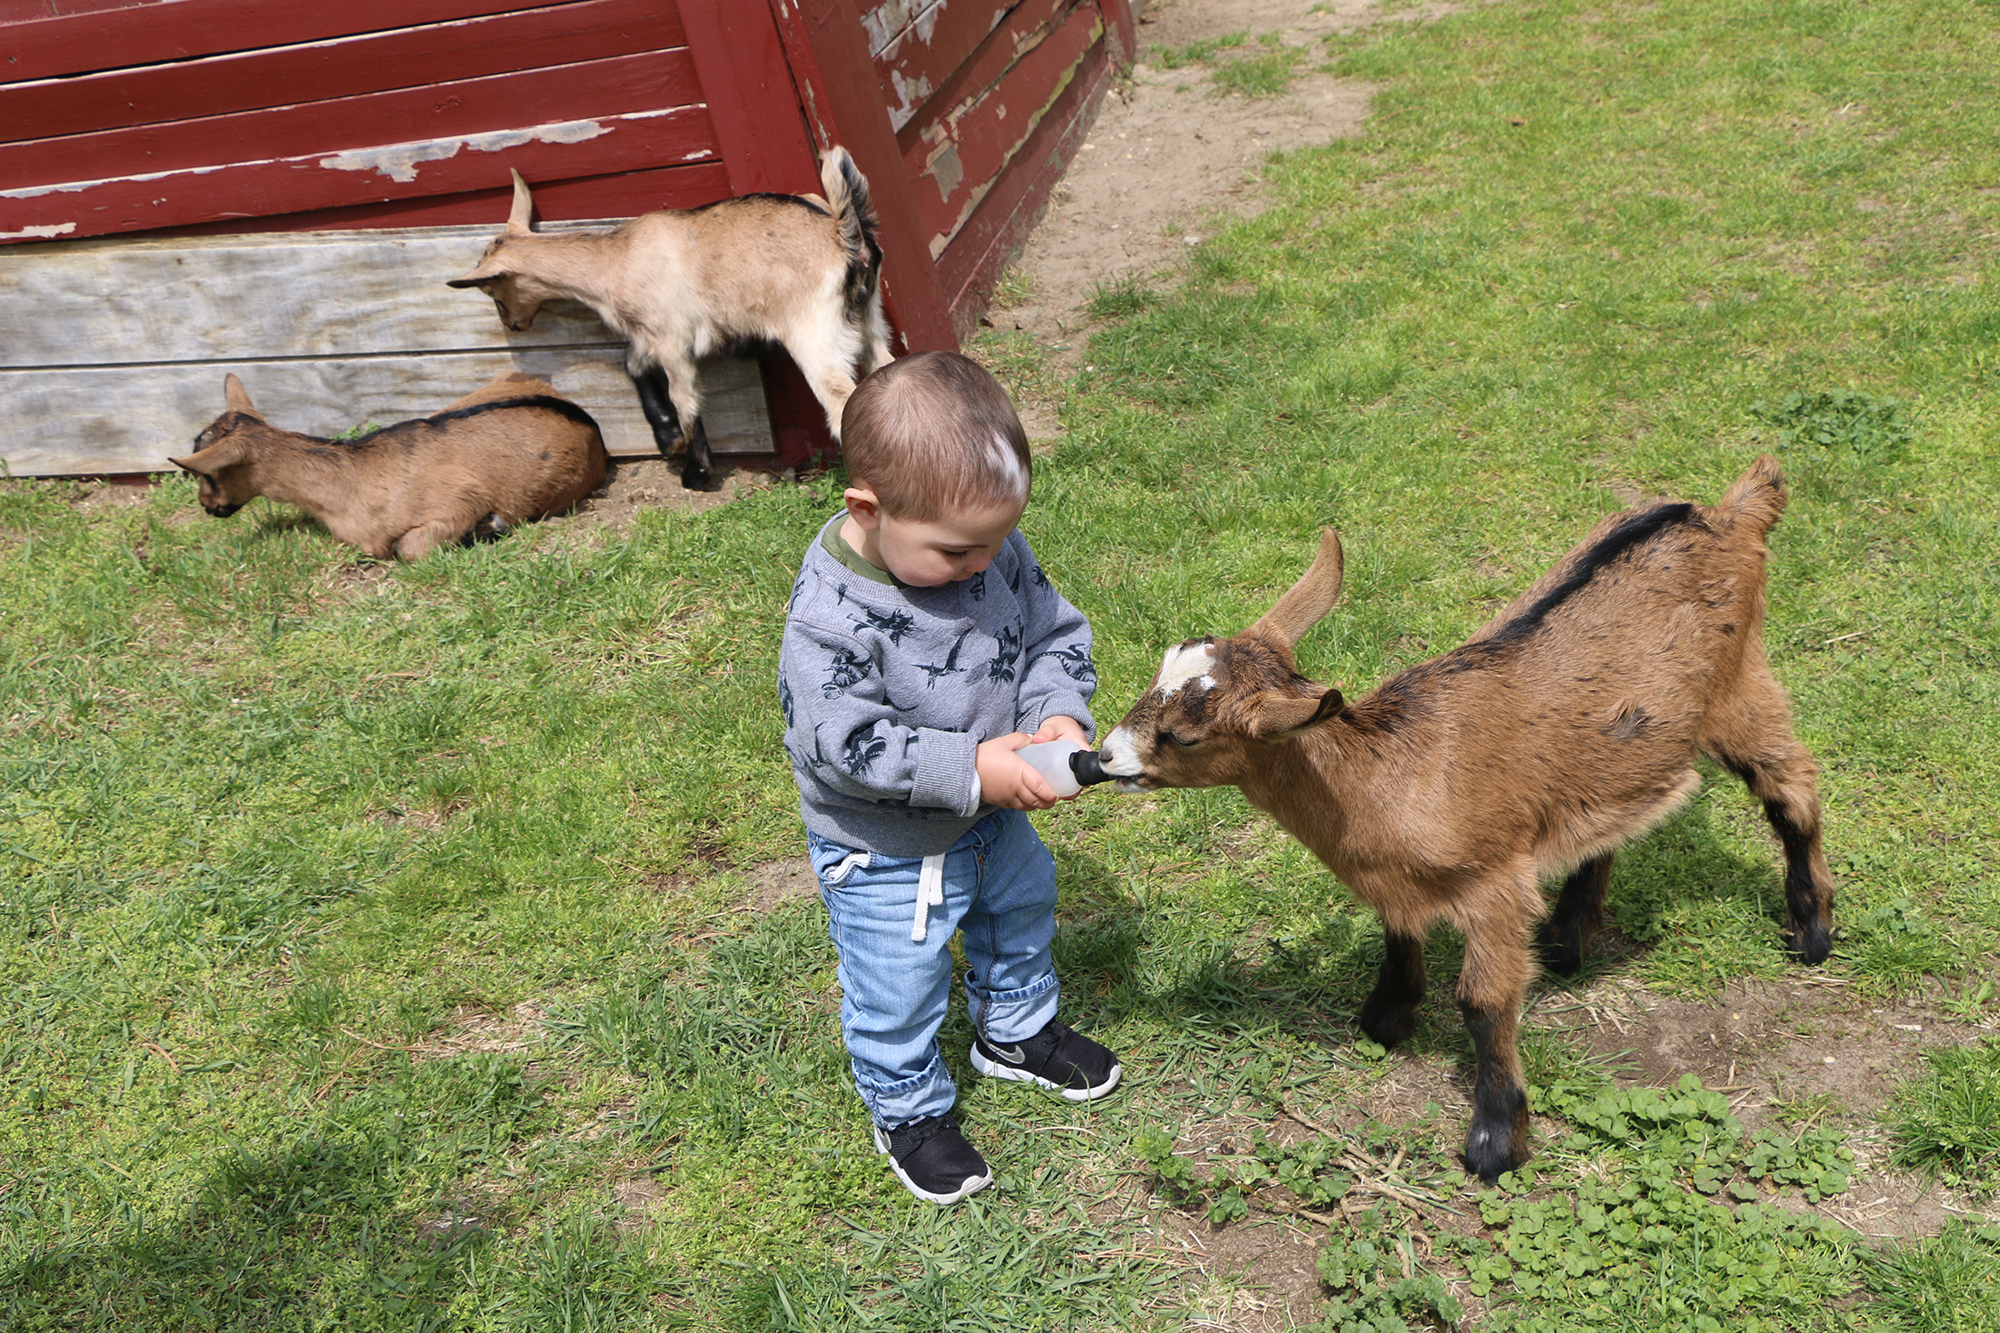 Adventure Is Closing In Long Island Game Farm Wildlife Park Amp Children S Zoo Announces Spring 2018 Schedule And Opening Day Long Island